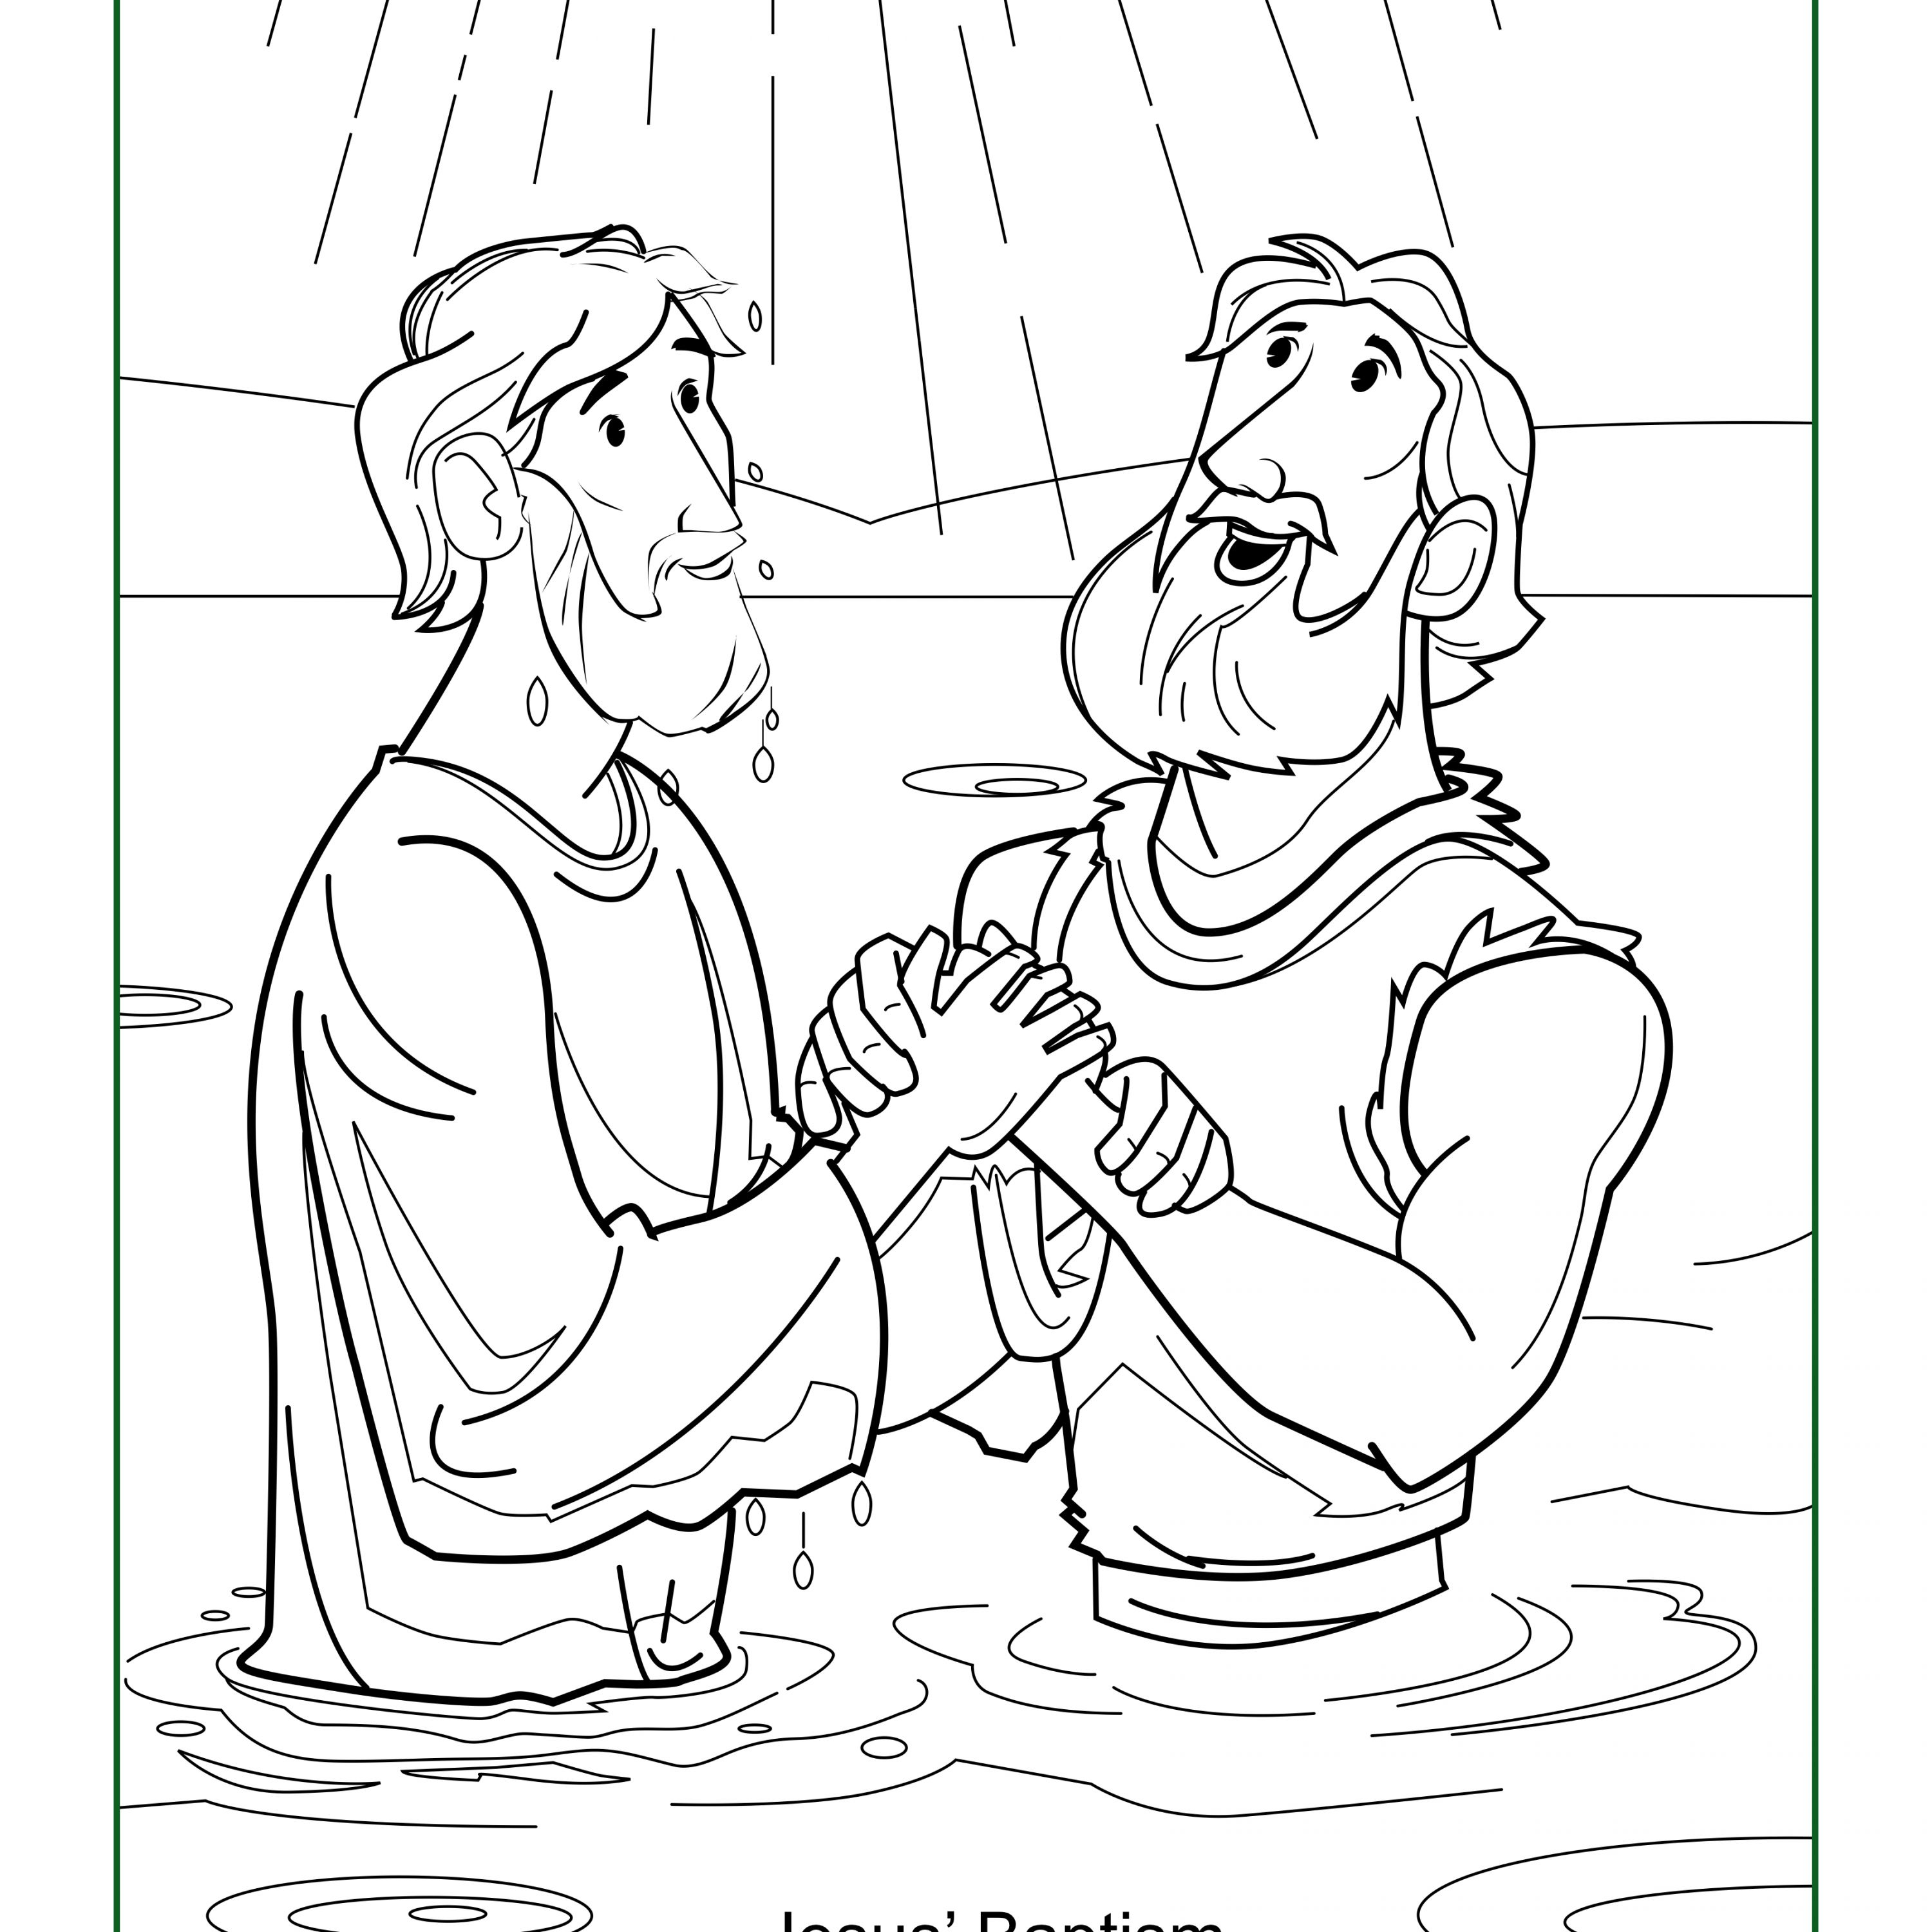 Jesus Coloring Pages For Adults At Getdrawings Com Free For